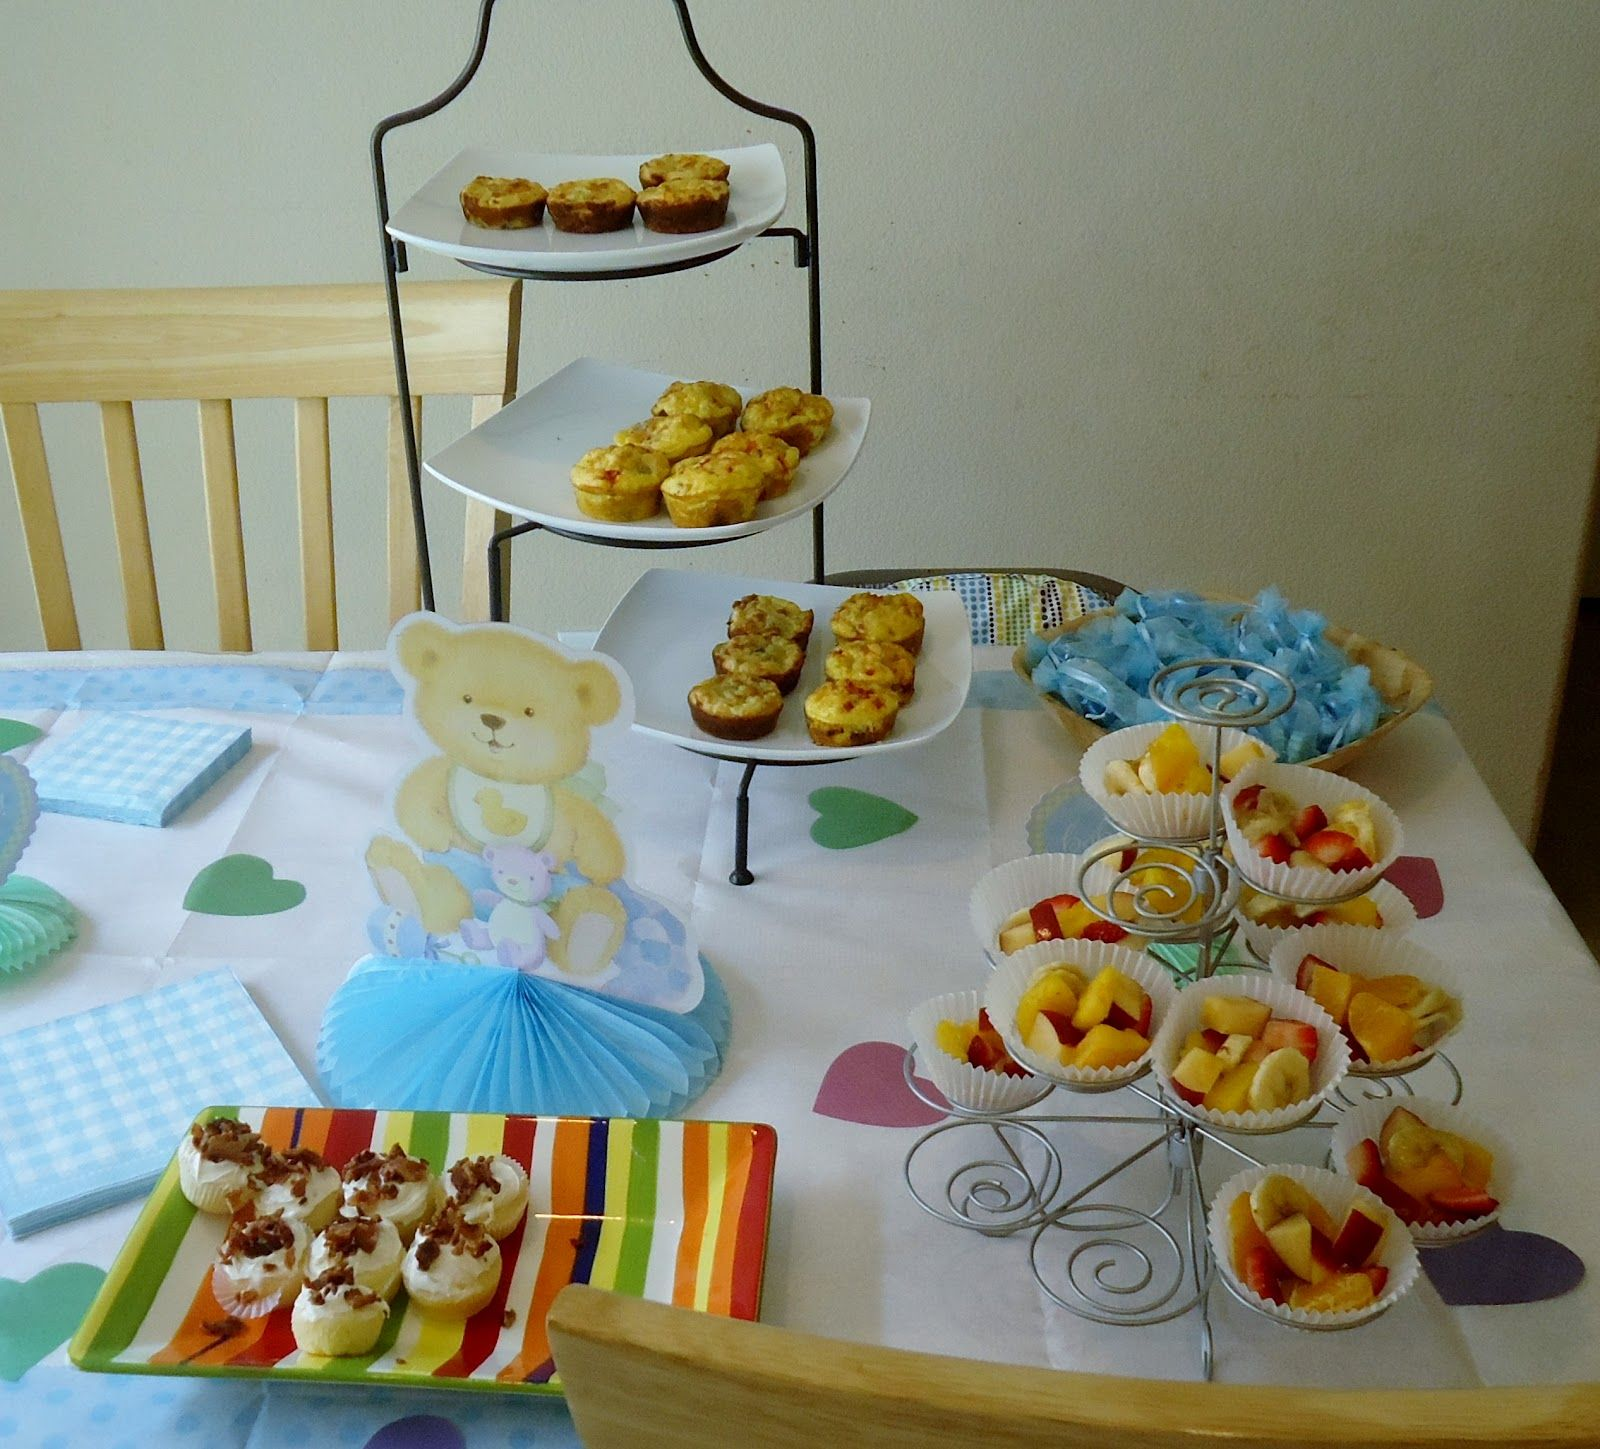 Picture Cheese Cupcakes Baby Shower Finger Foods Ideas Baby Shower Finger Foods Ideas Cheese Baby Shower Finger Foods A Boy Baby Shower Finger Food Ideas Recipes Girls Broccoli Girls Broccoli